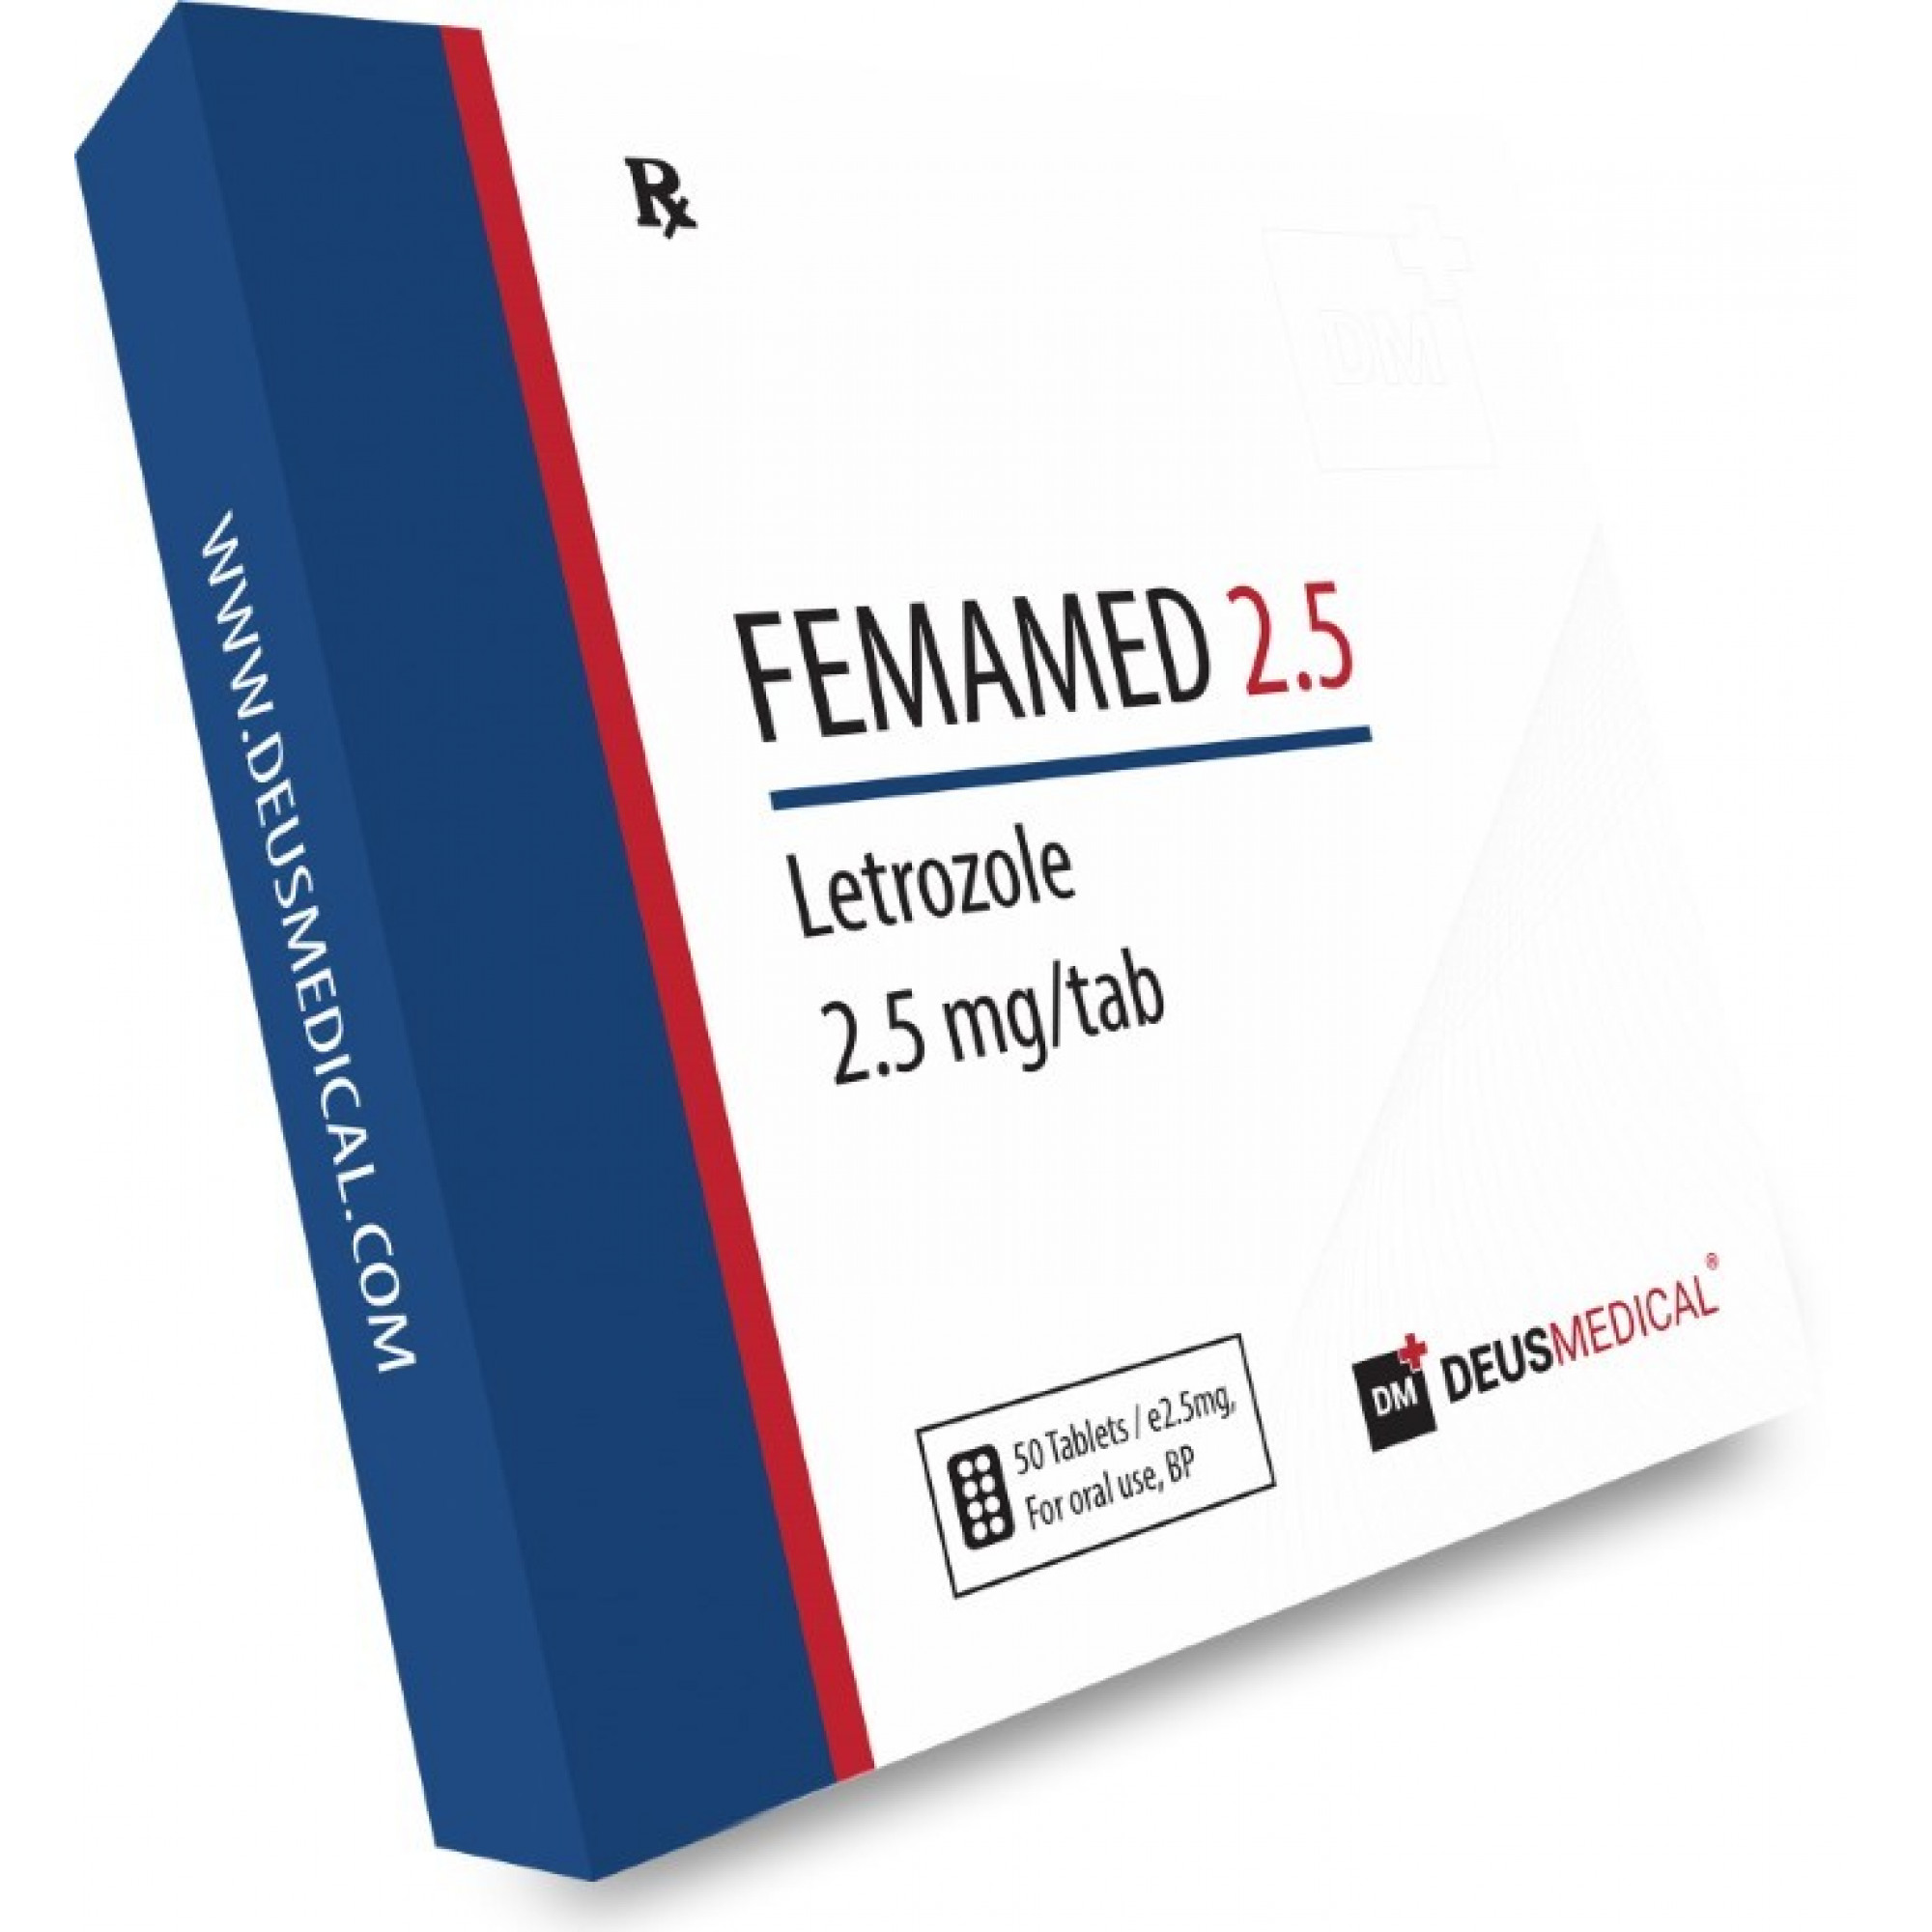 FEMAMED 2.5 (Letrozole)